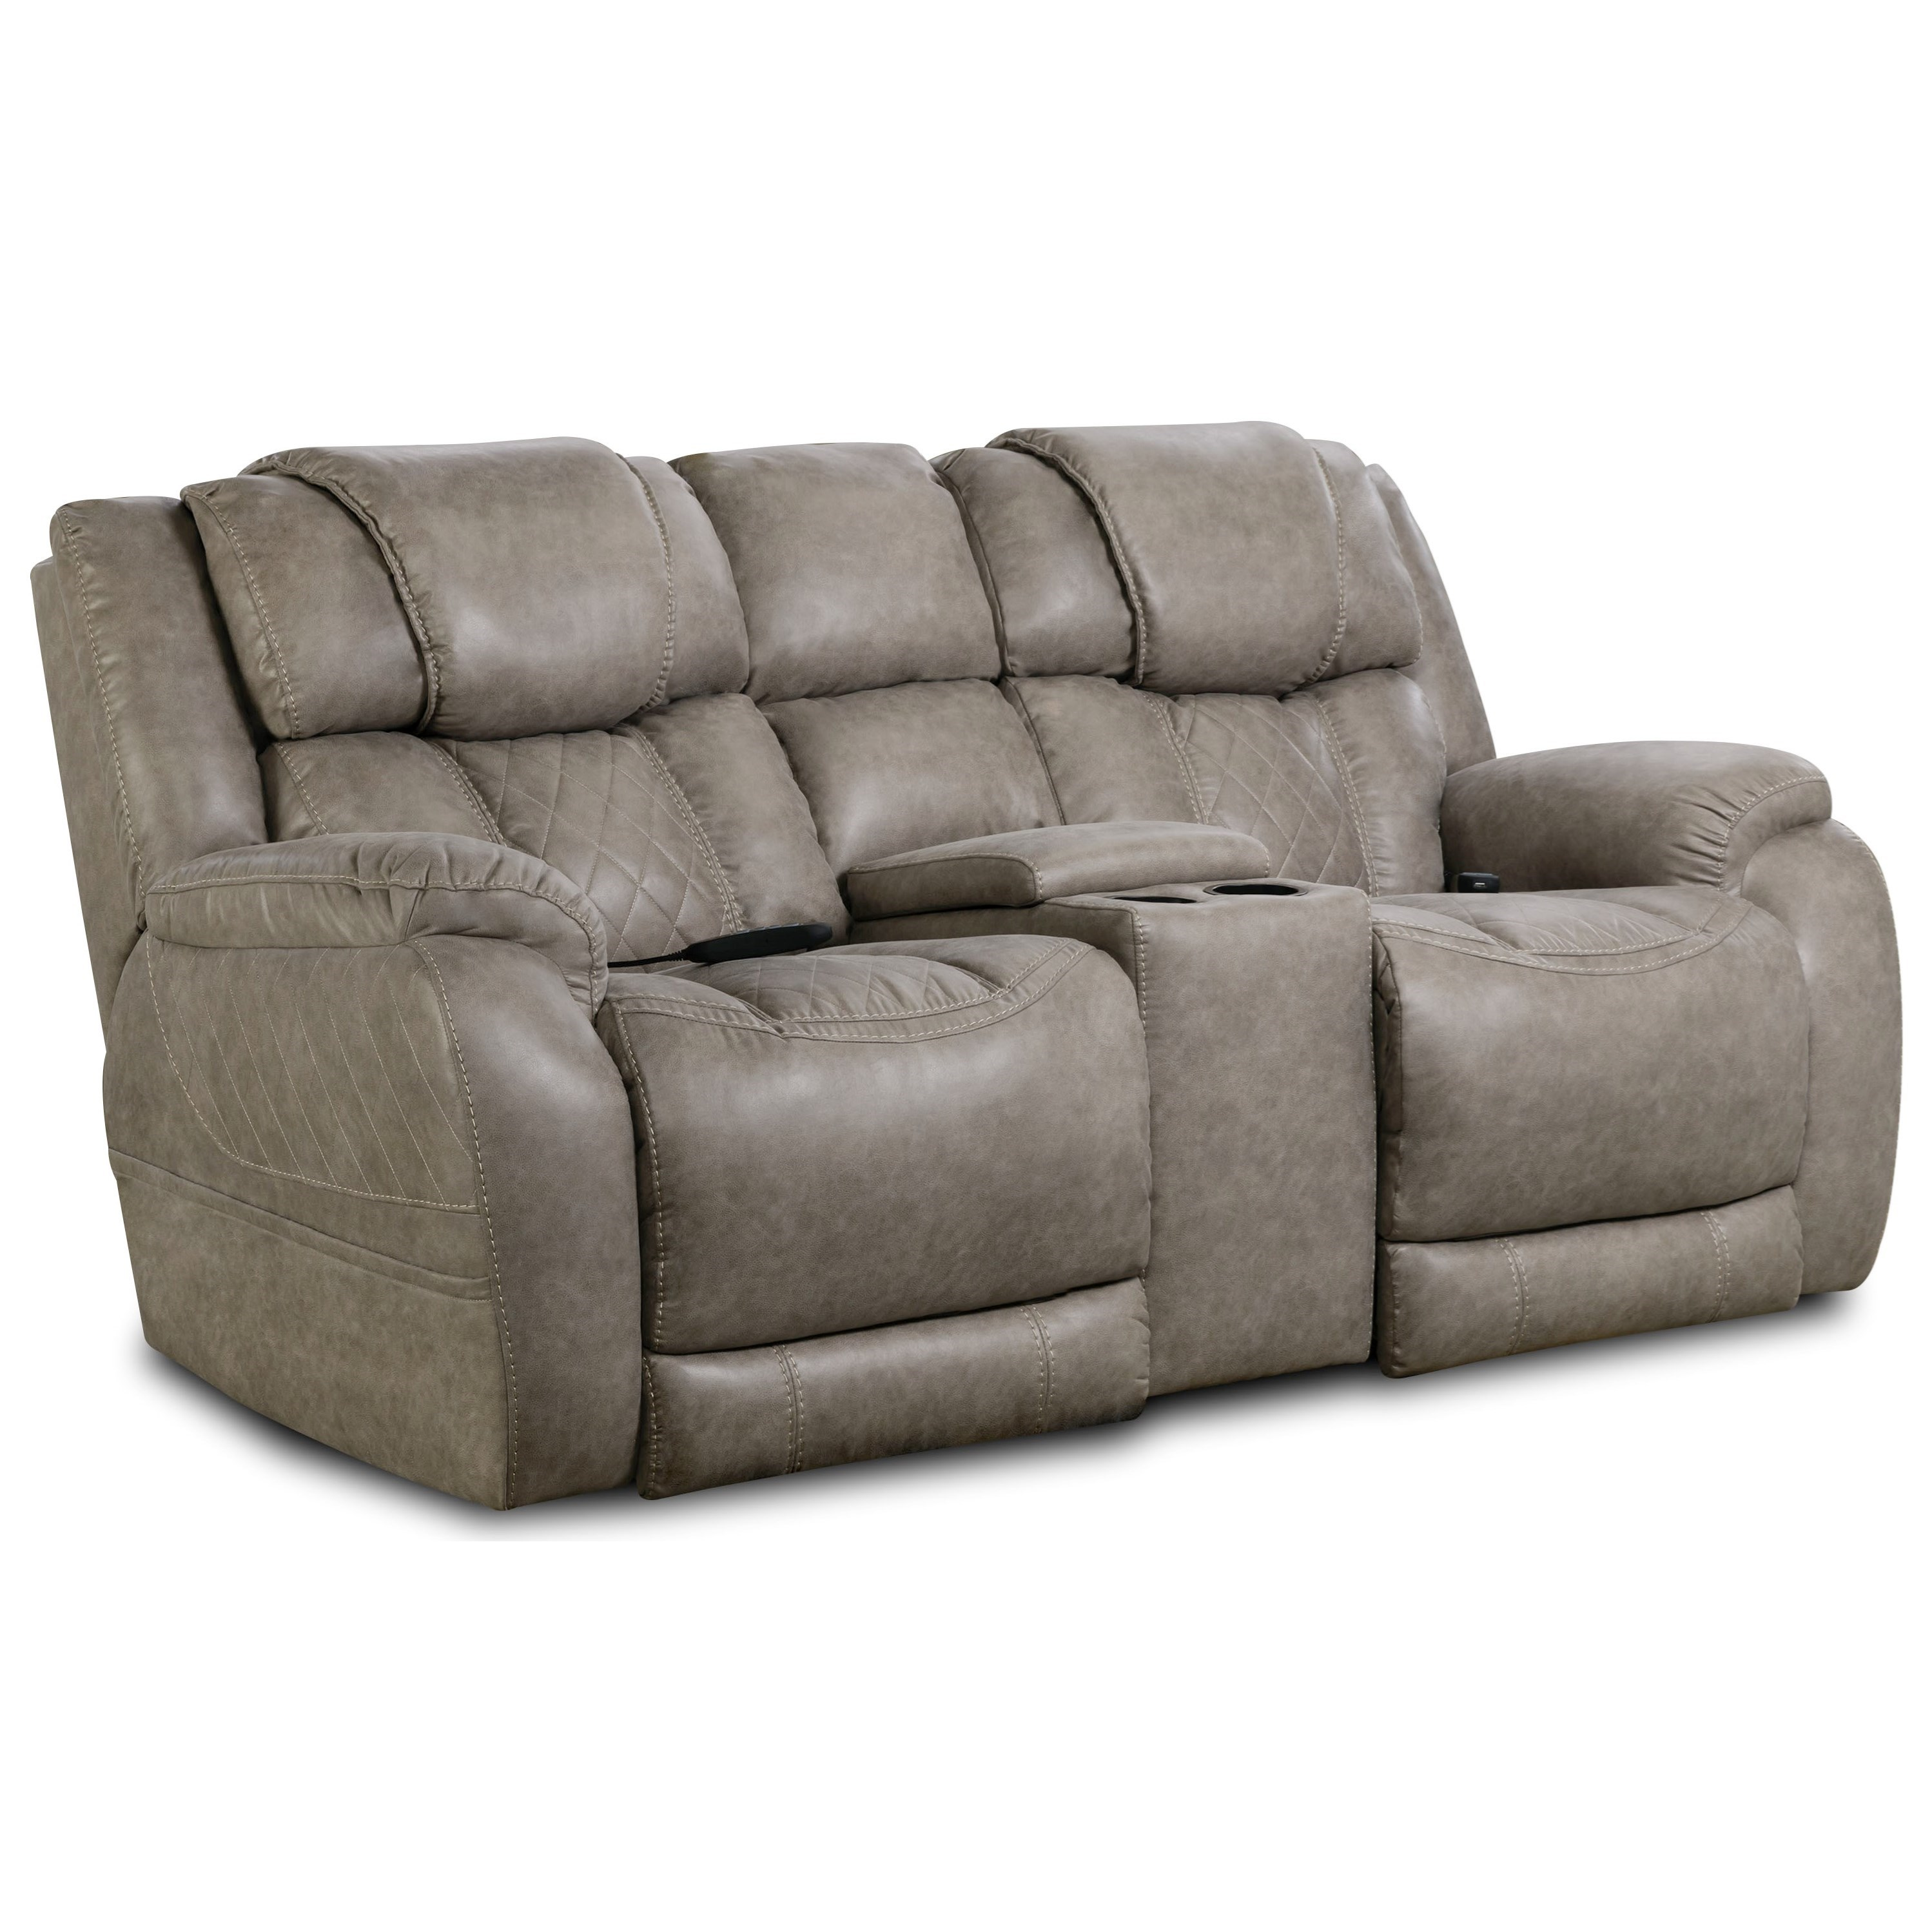 174 Power Console Loveseat by HomeStretch at VanDrie Home Furnishings